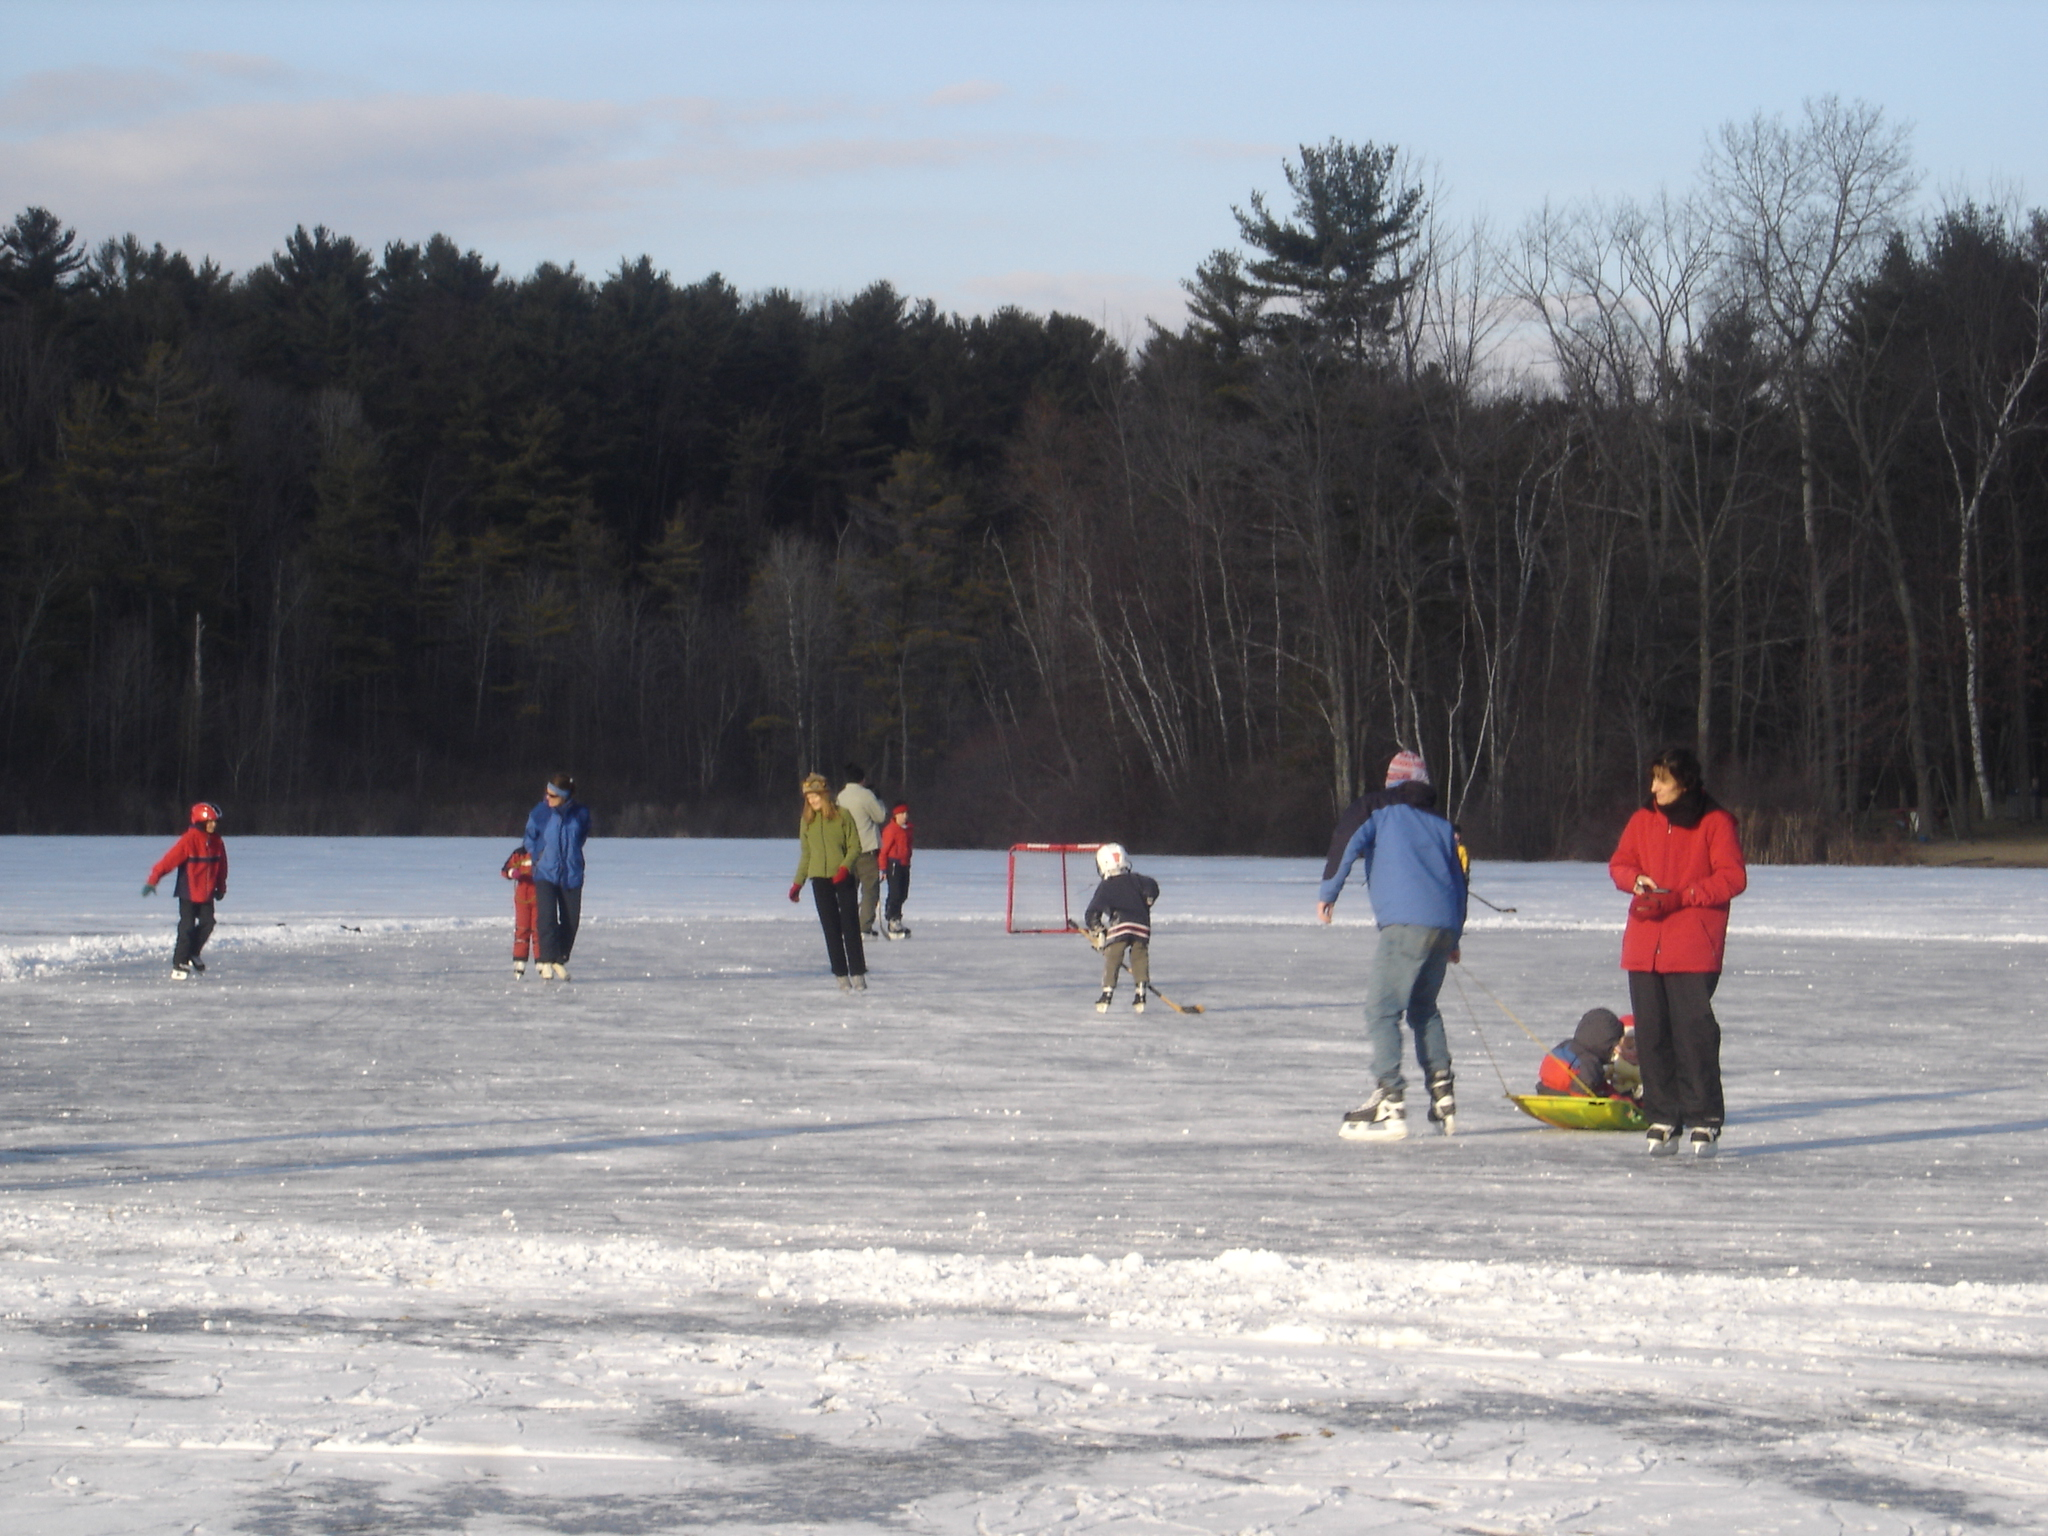 Winter activities are fun at Lake Mansfield in Great Barrington MA